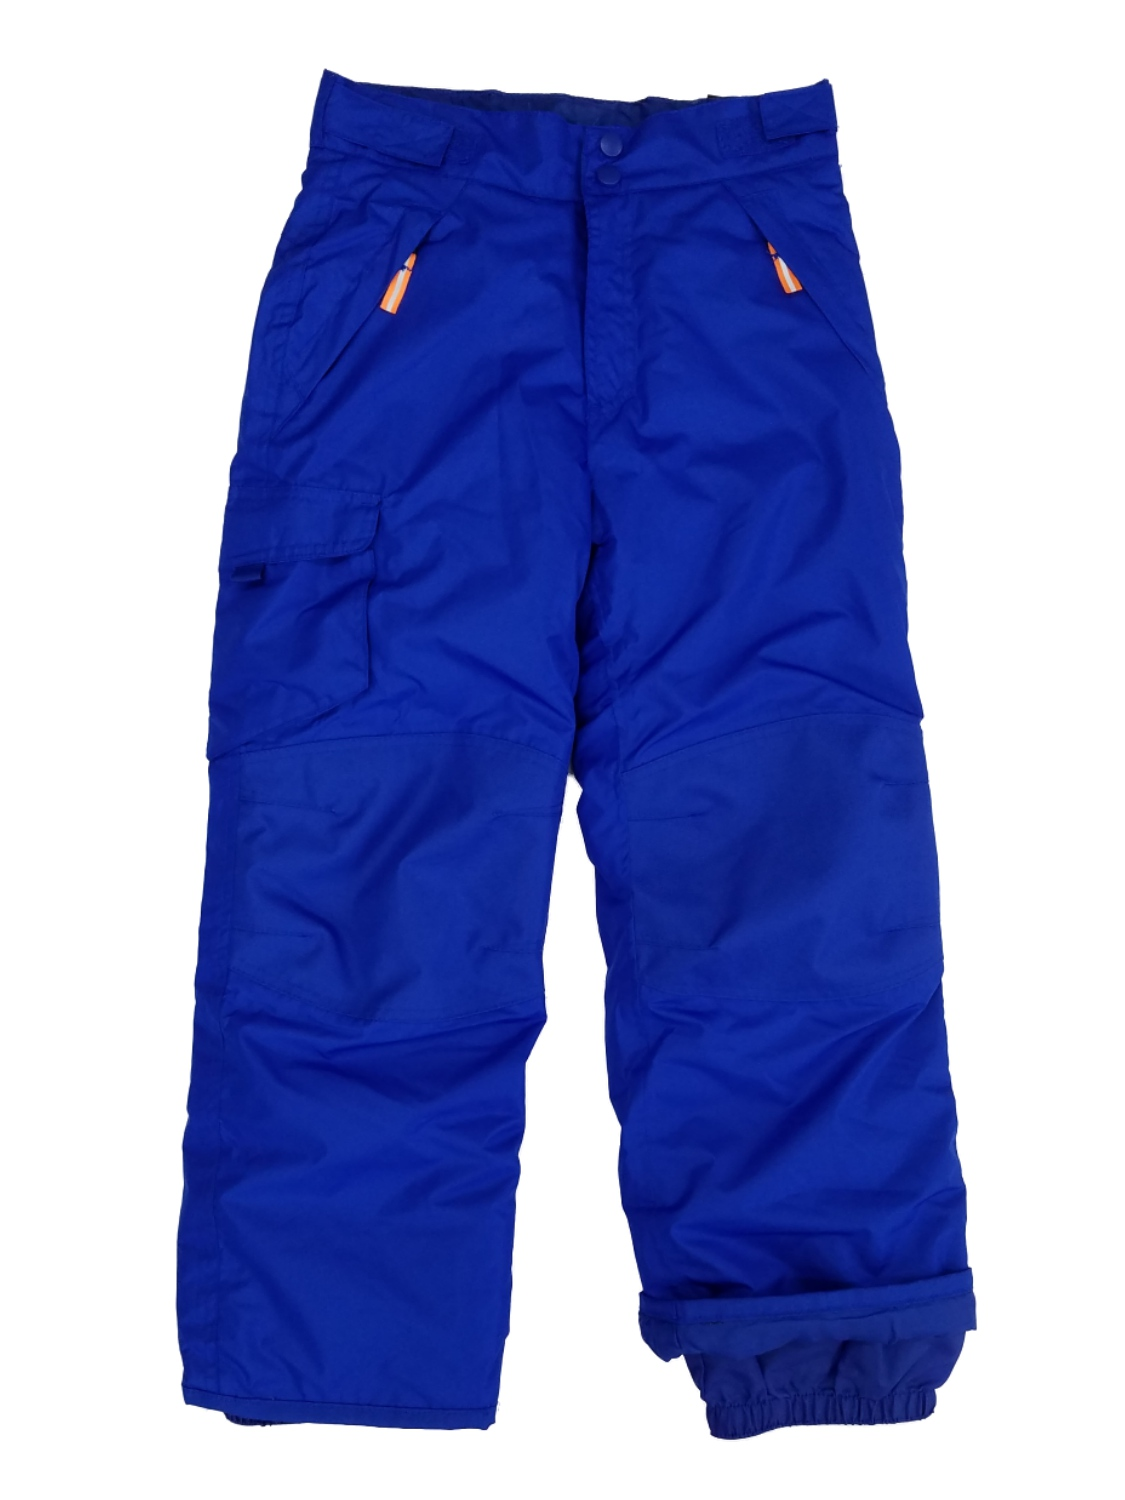 Boys Royal Blue Water & Wind Resistant Lightweight Insulation Cargo Snow Pants